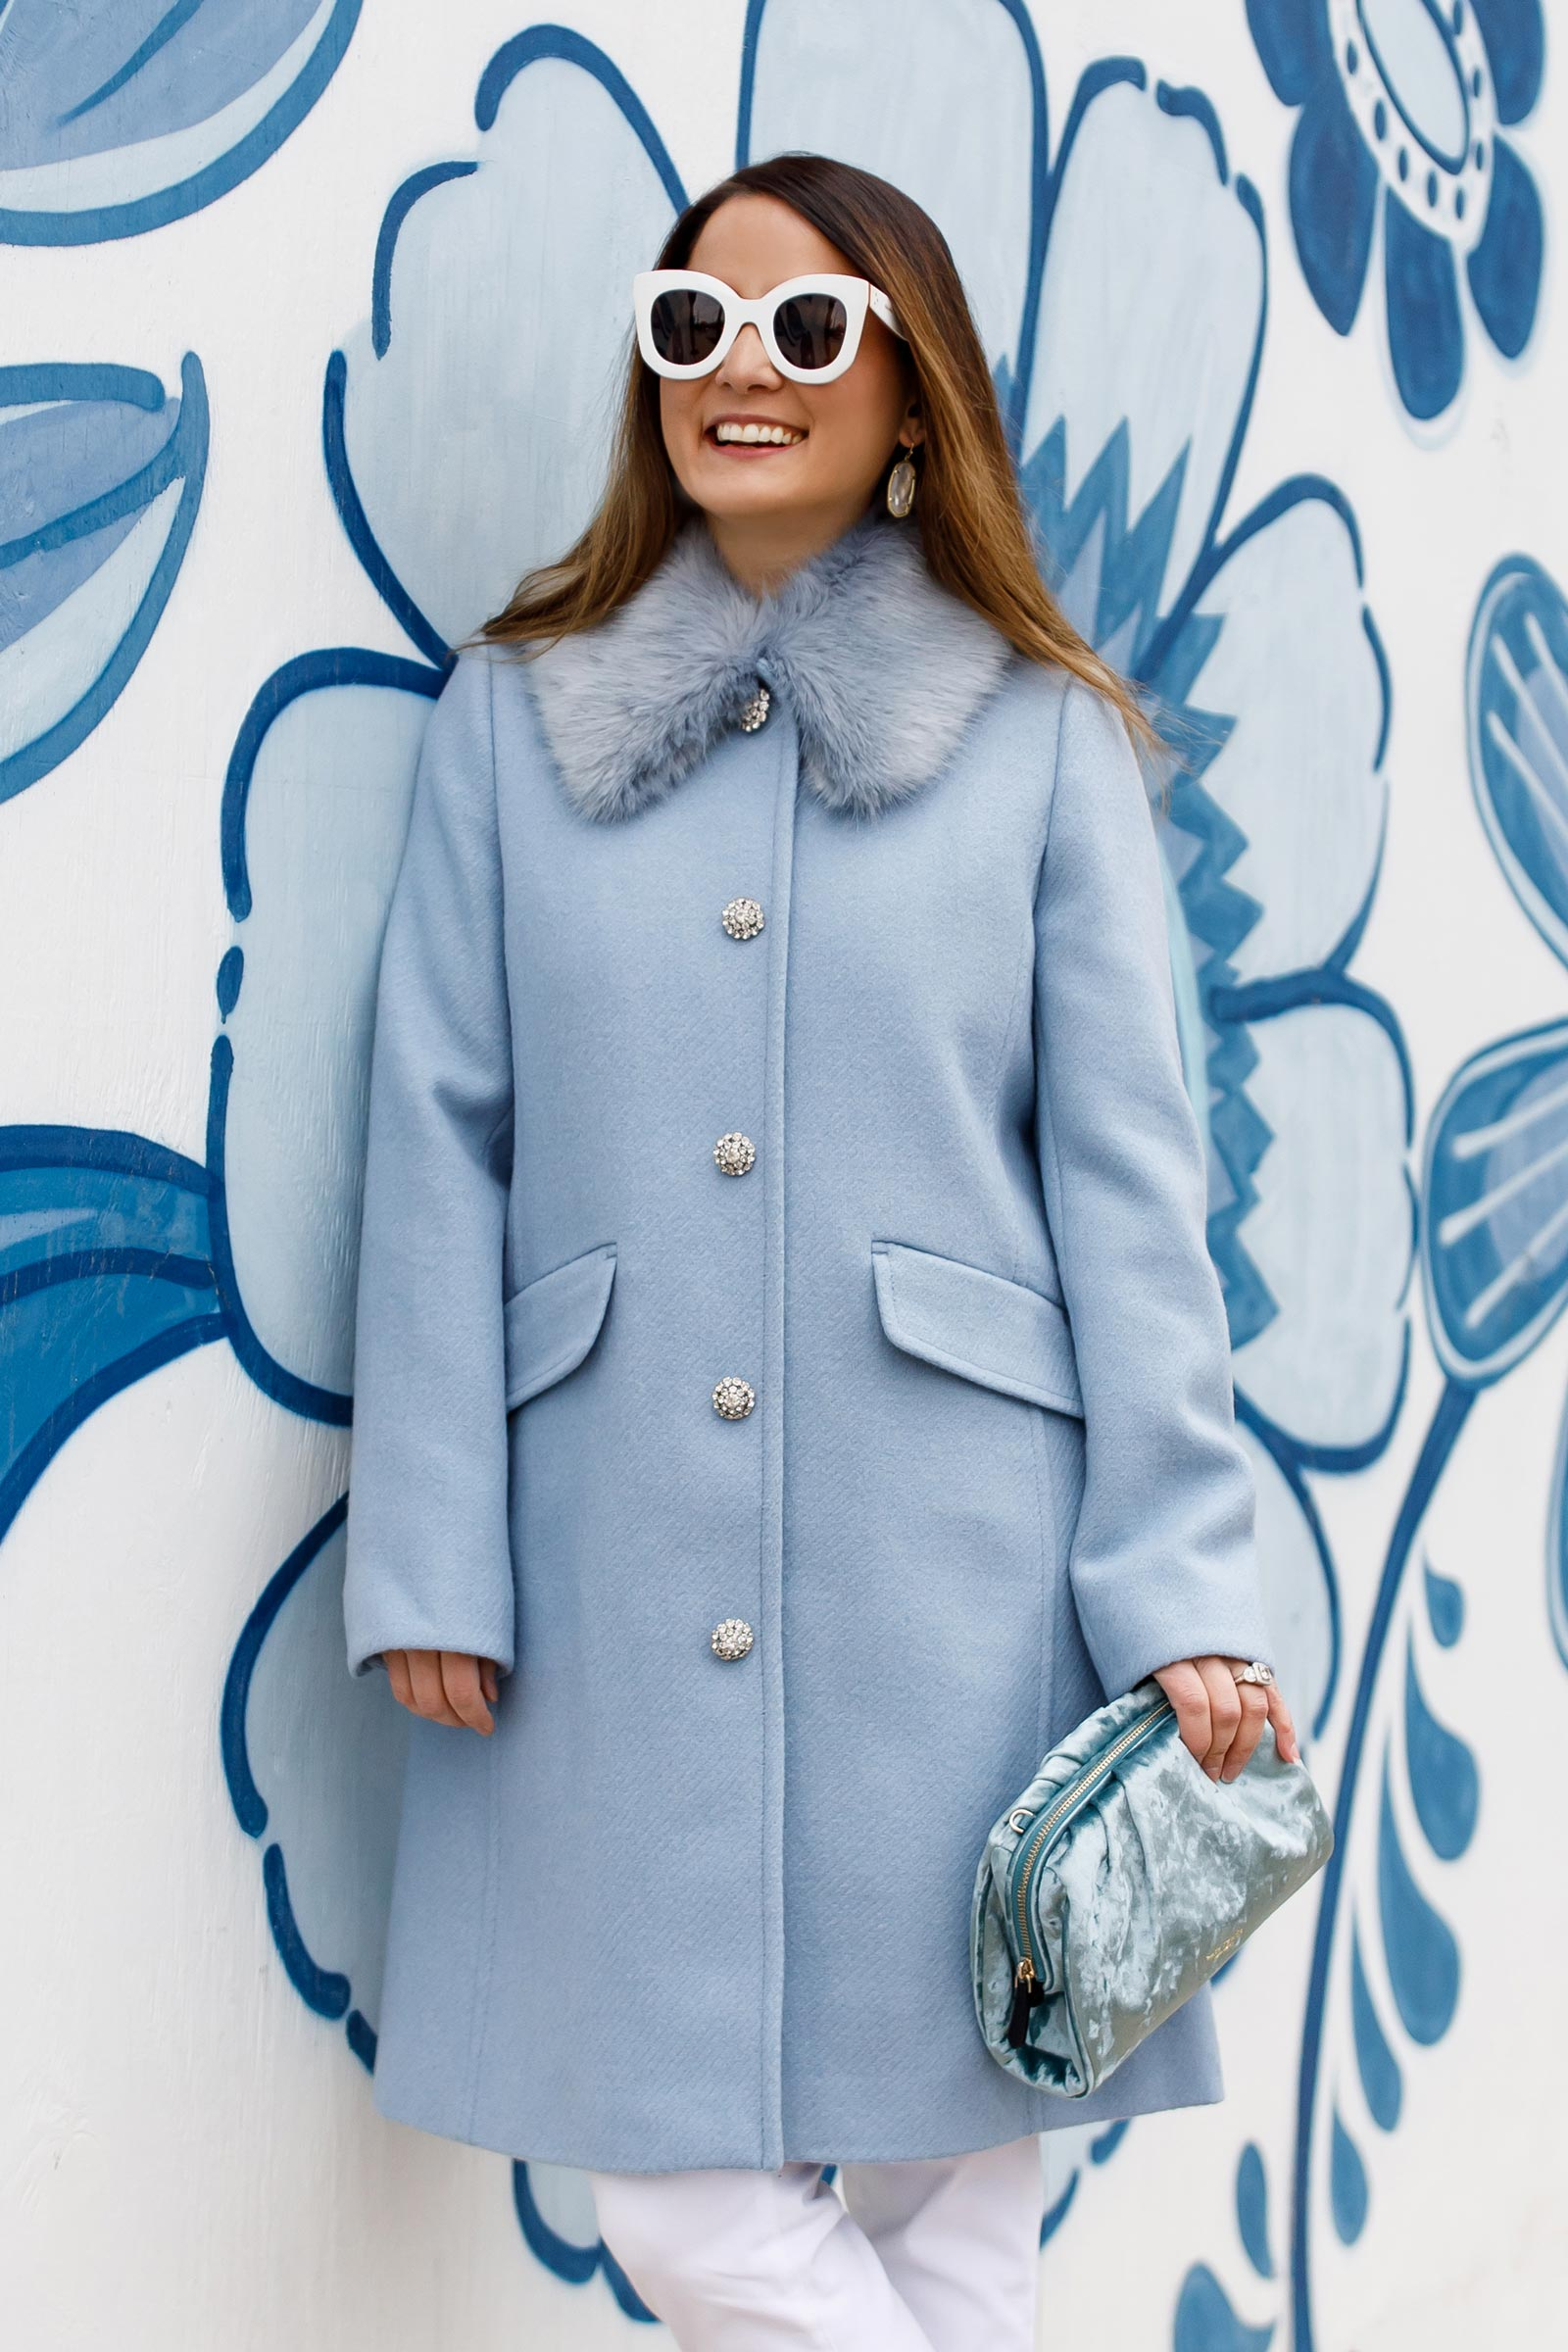 Kate Spade Cornflower Blue Coat